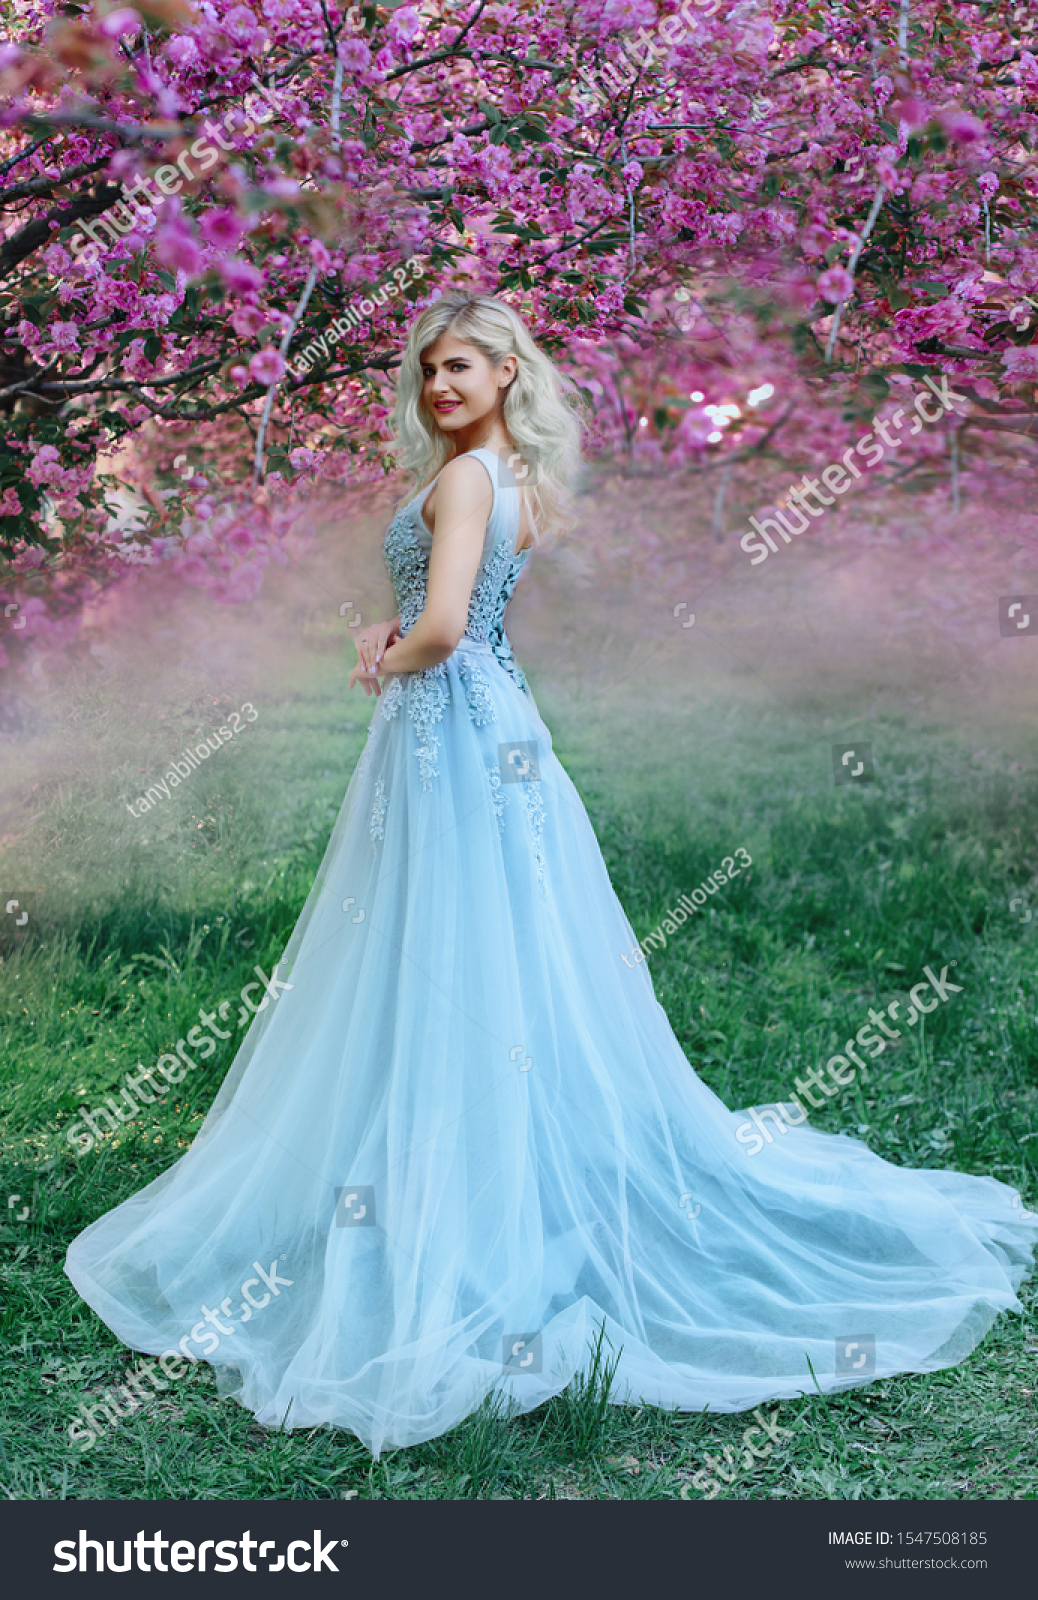 An incredible, delicate blonde in a luxurious, delicately blue dress walks in the spring, sakura and cherry orchards are in bloom. Princess with long curly hair. Vanilla color art photo #1547508185